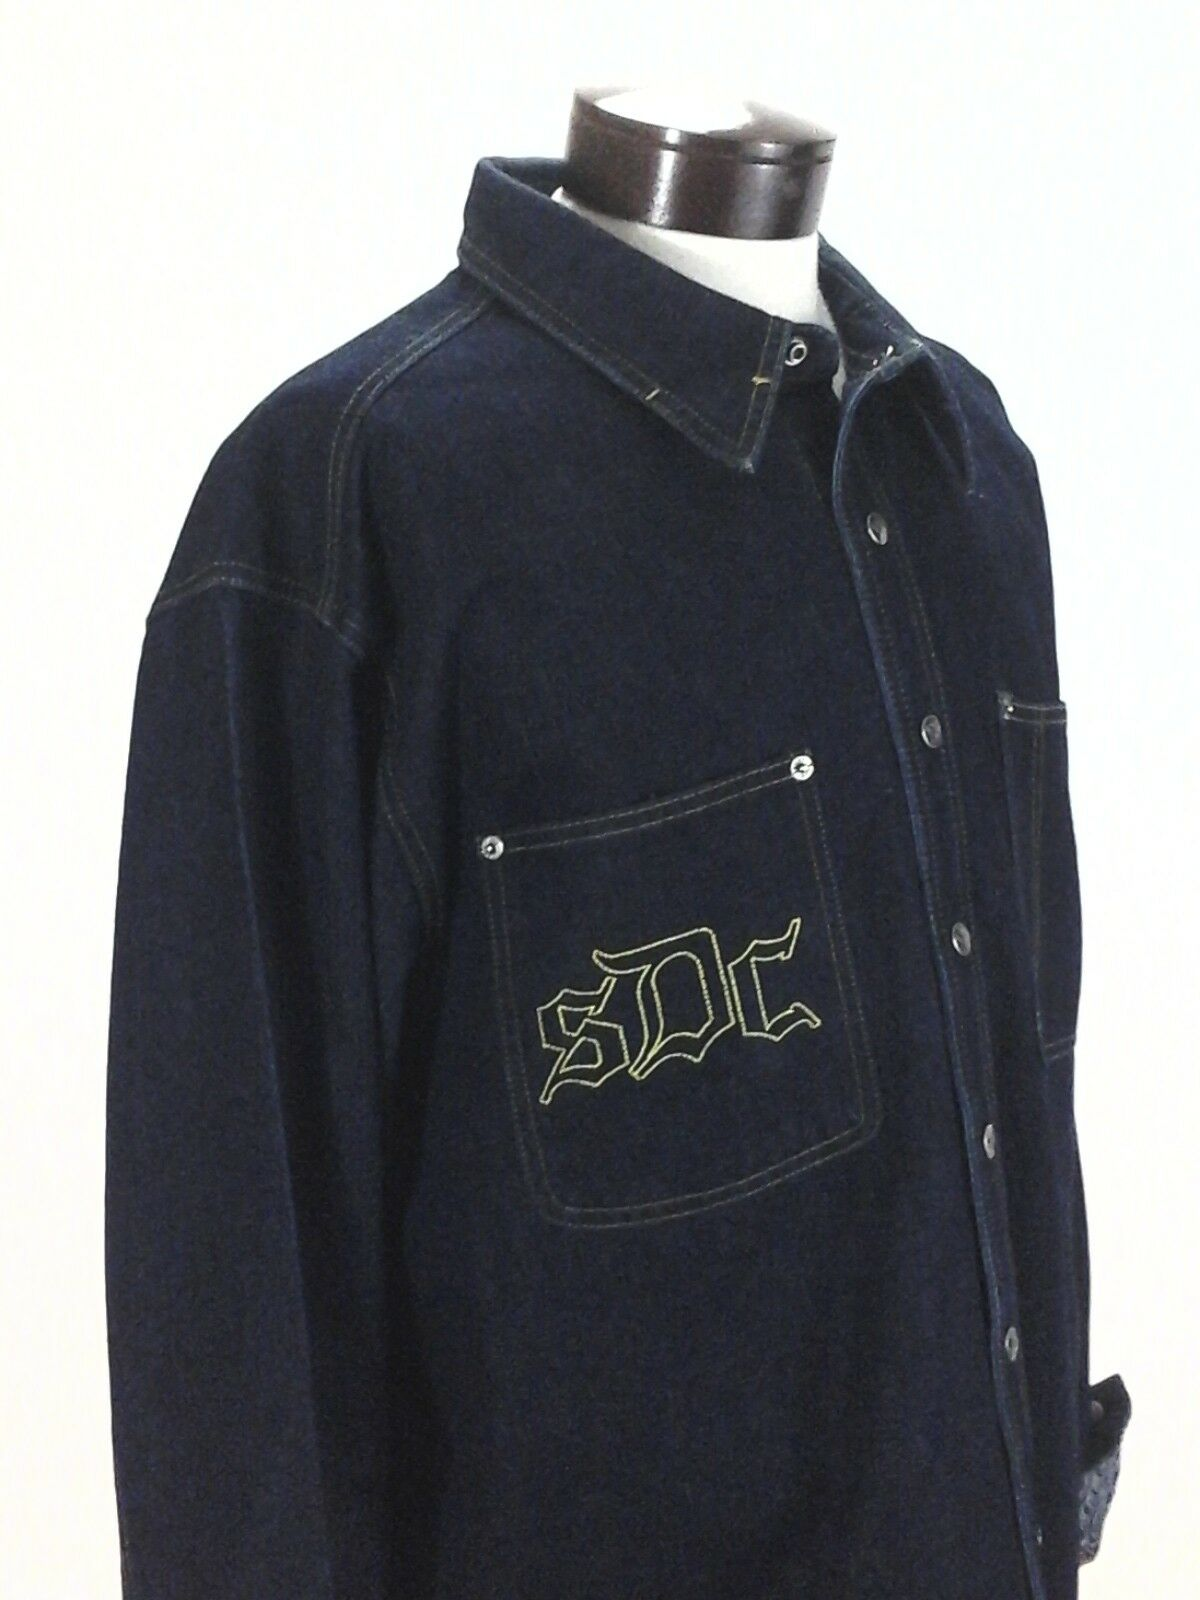 SNOOP DOGG Jeans Denim Shirt Vintage 90's DOGGYSTYLE Sewn Logo bluee Mens XL RARE